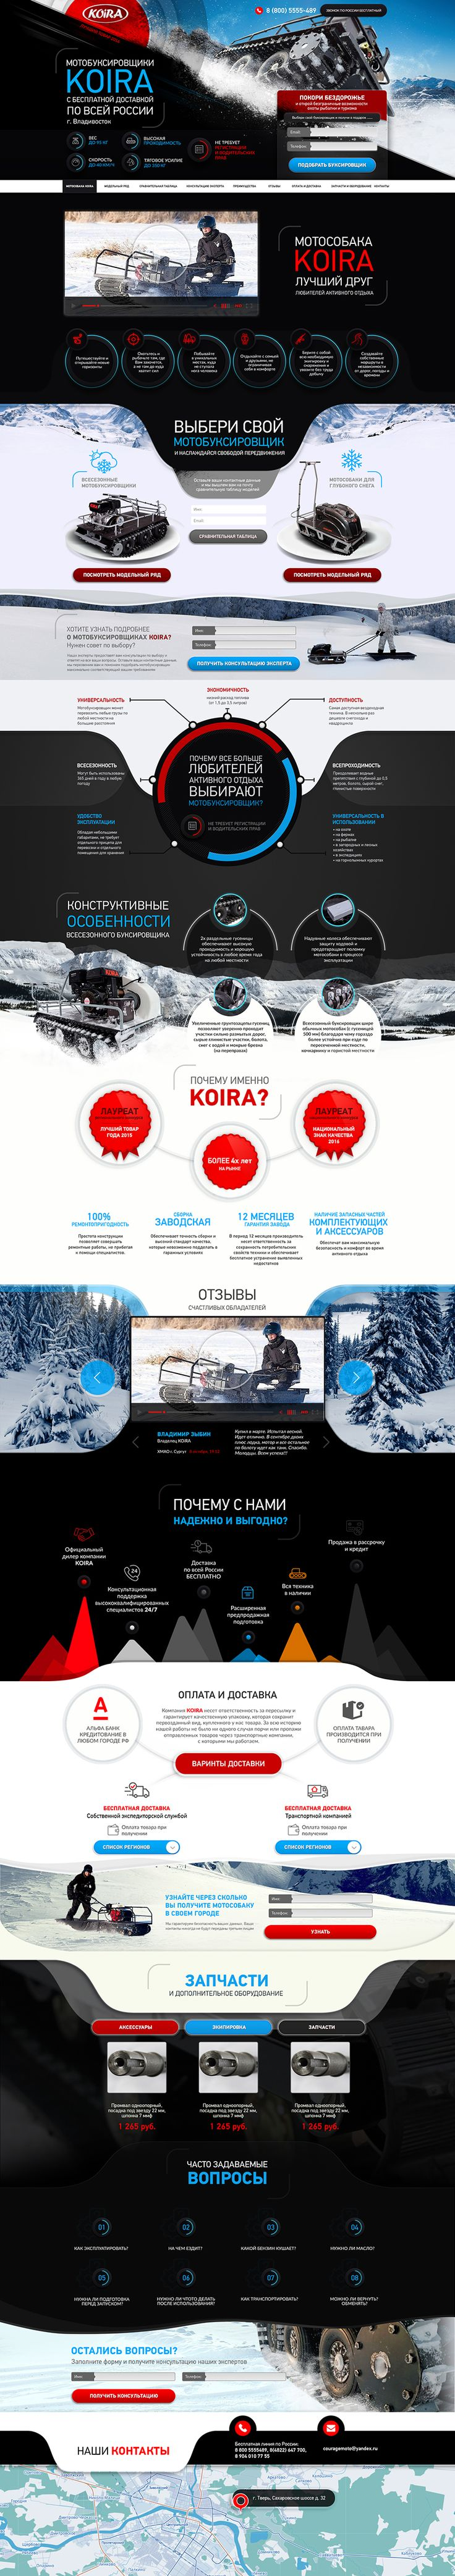 Landing Page KOIRA  #landing, #page, #design, #web, #HTML5, #photoshop, #website, #motordogs, #snow, #extreme